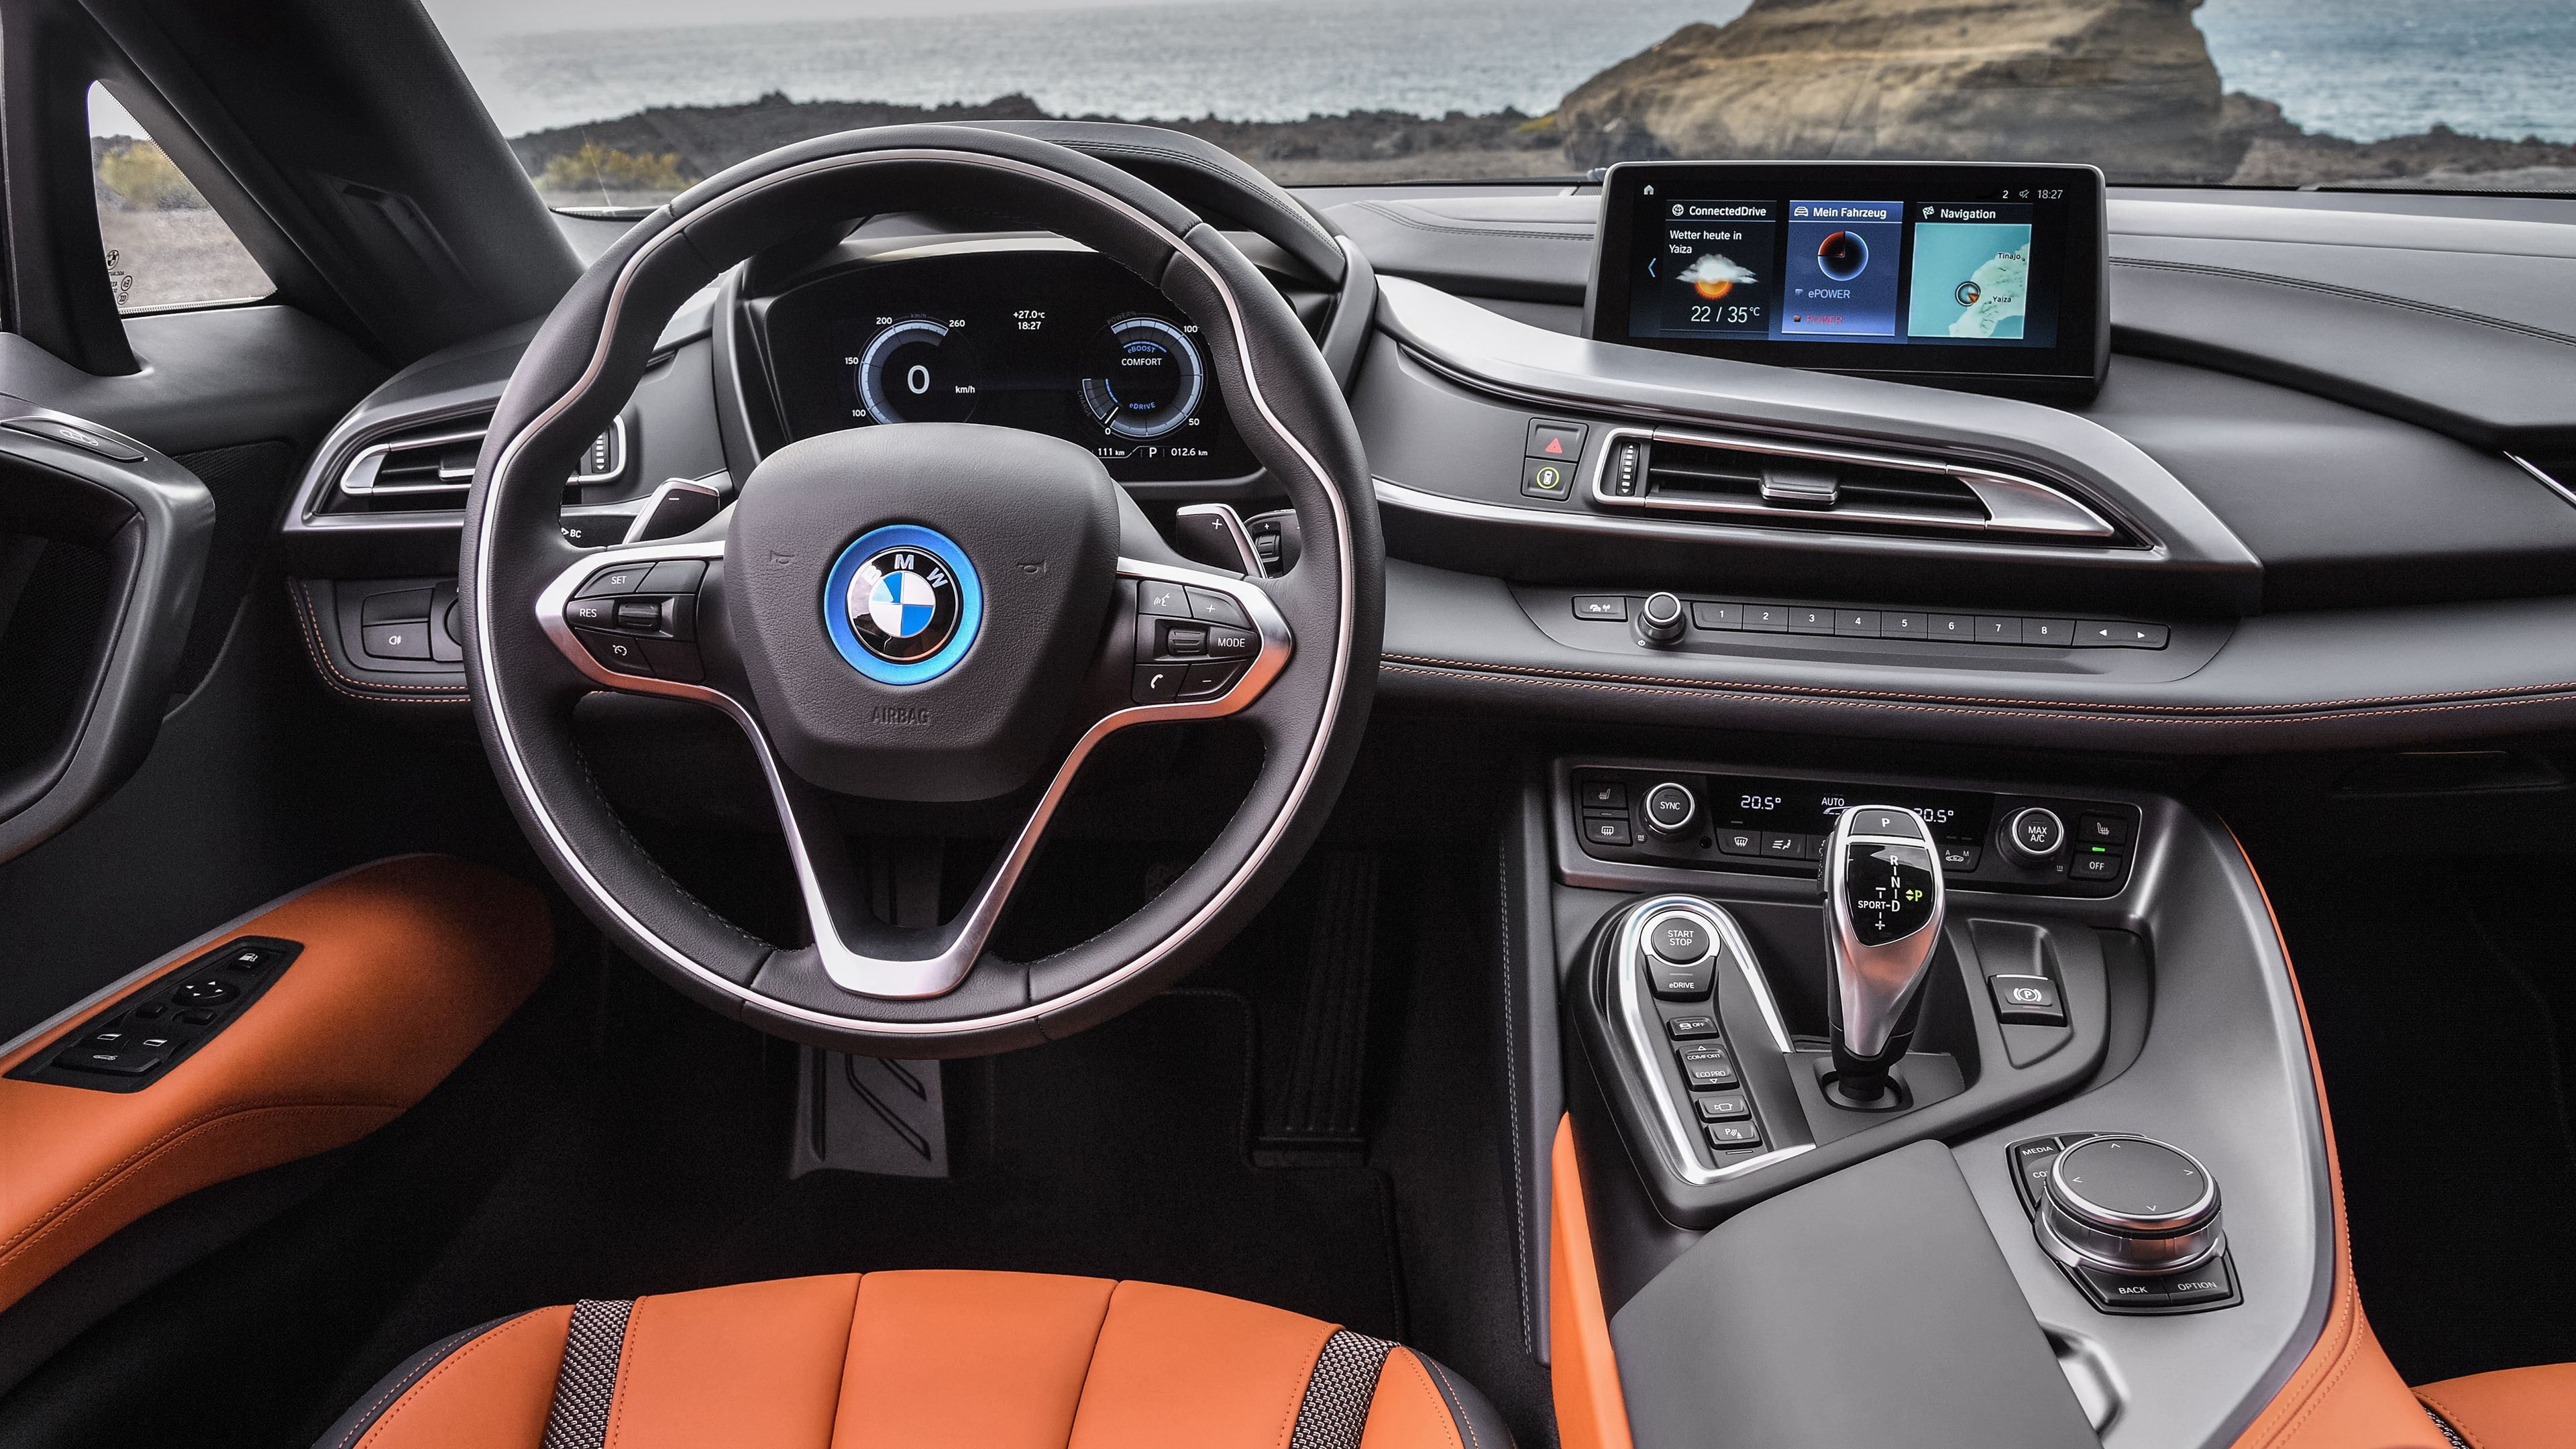 2018 Bmw I8 Roadster Interior Interior Wallpapers Hd Wallpapers Cars Wallpapers Bmw Wallpapers Bmw I8 Wallpapers 4k Wal Bmw I8 Bmw Wallpapers Bmw Interior